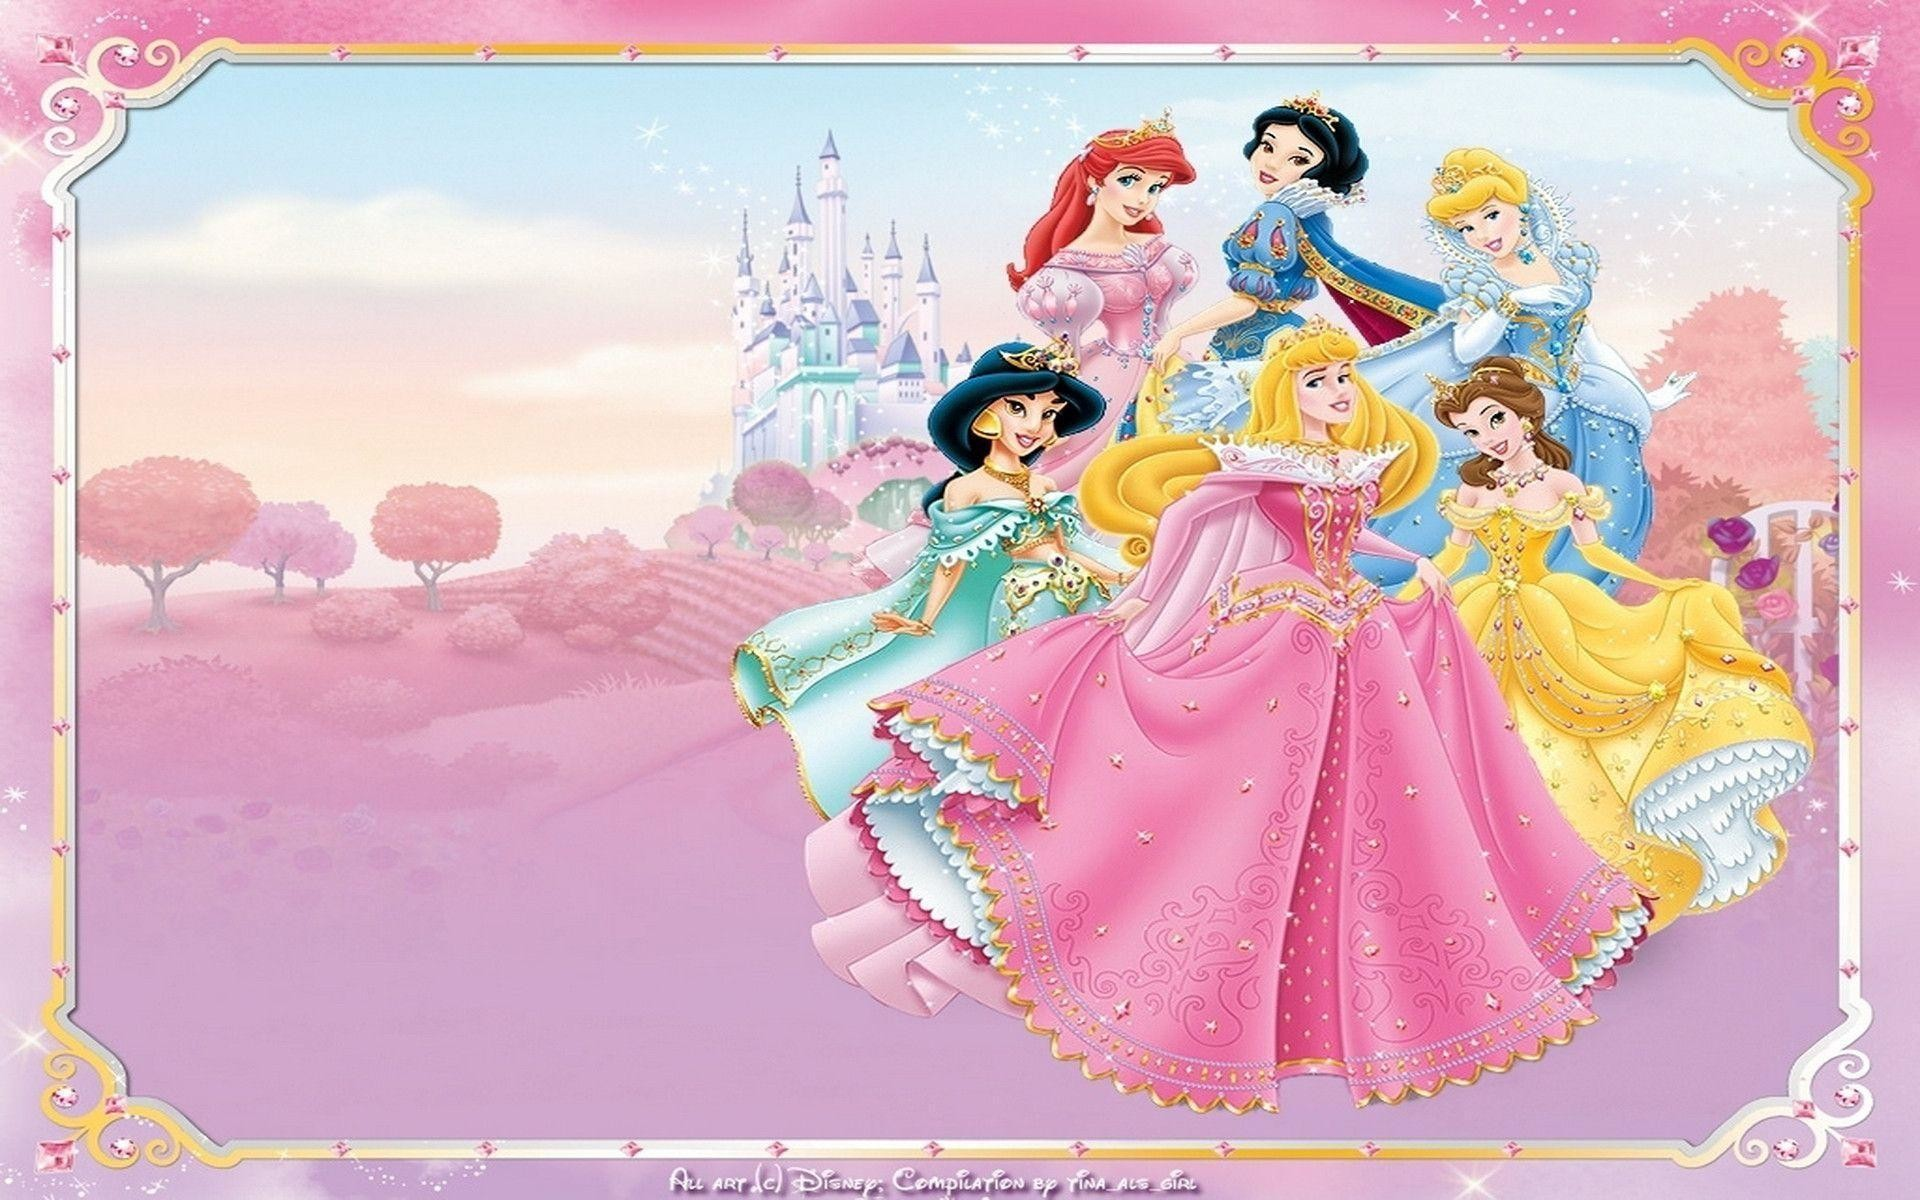 from King free nude pictures of disney princess